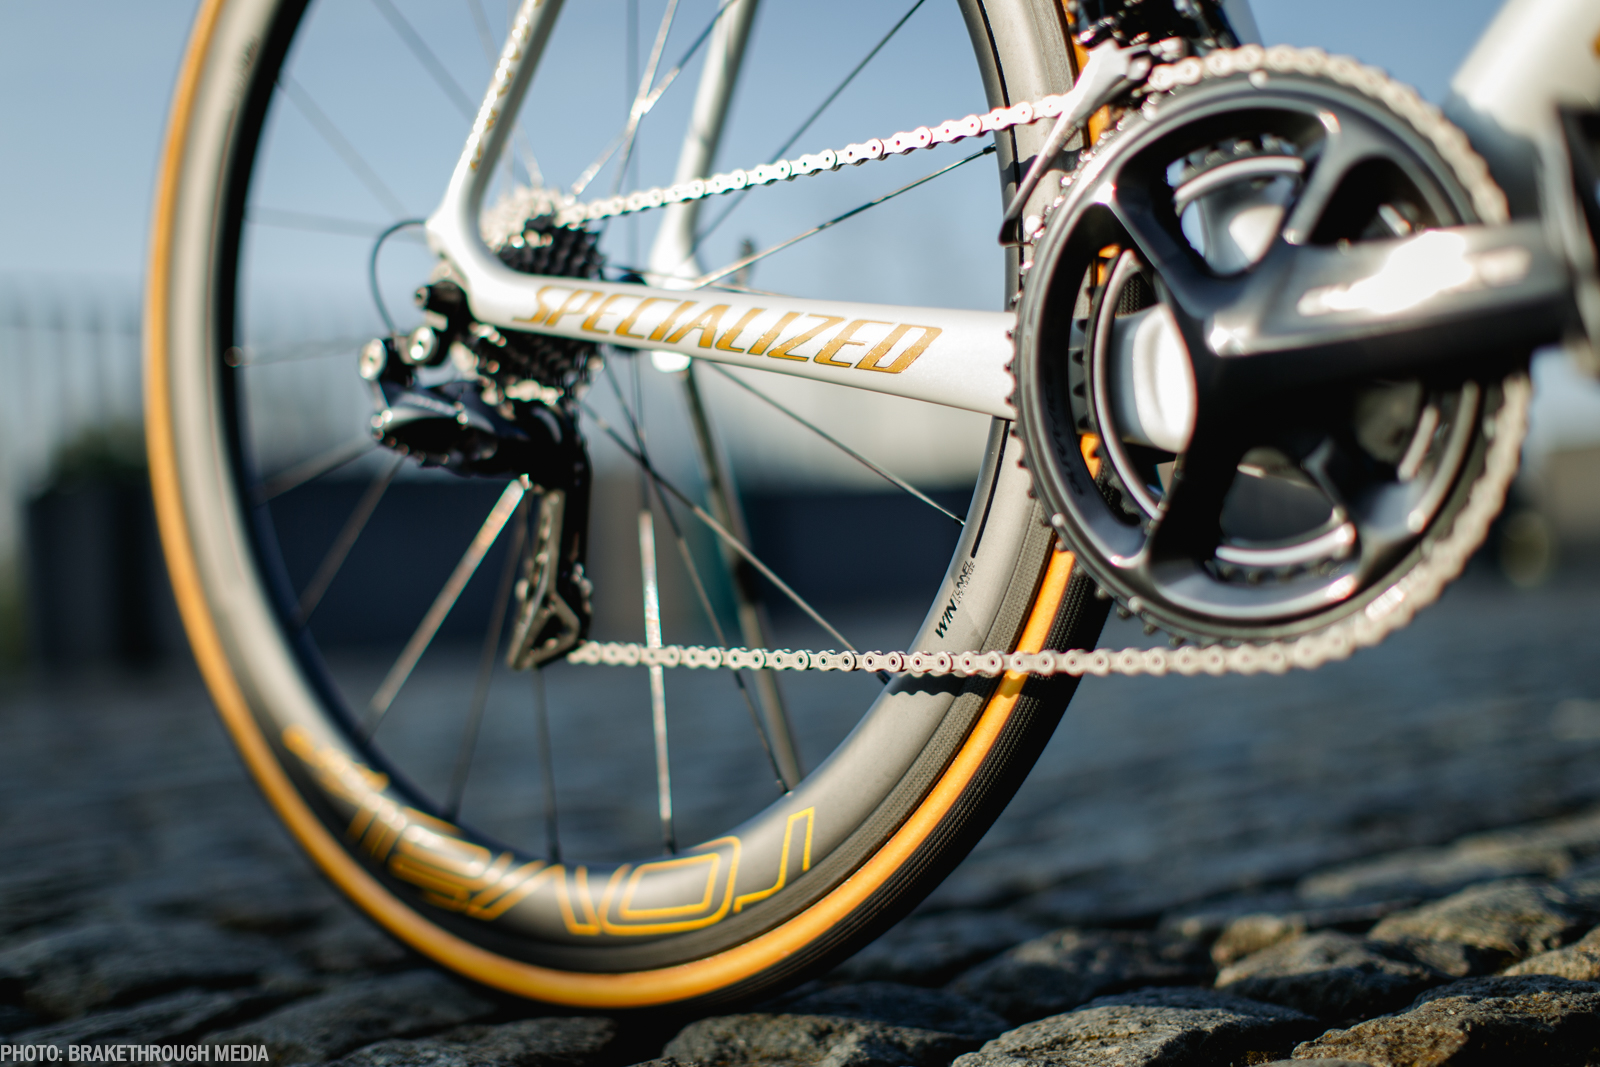 Tom Boonen's Specialized Tarmac with new Dura Ace Di2